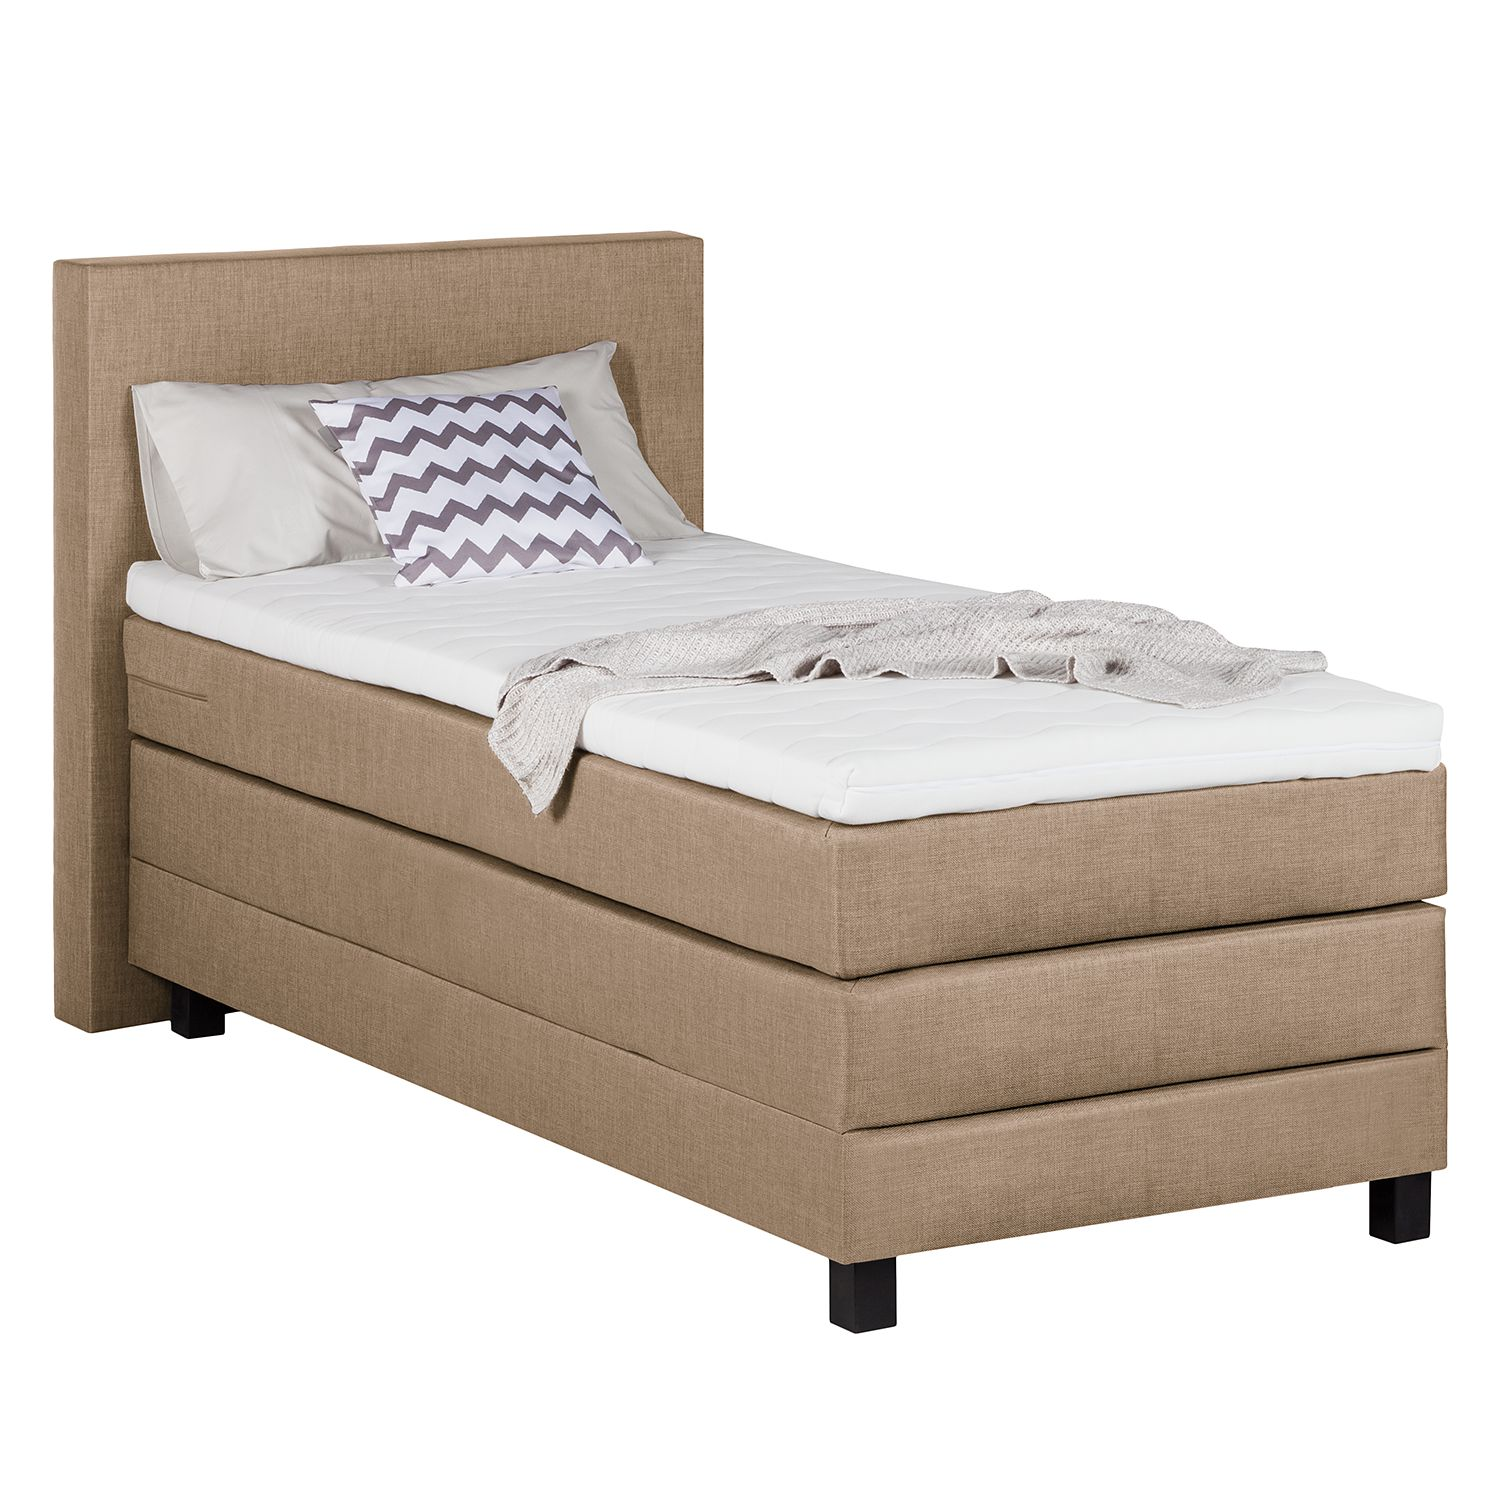 Boxspringbett Splendid Night II - 100 x 200cm - H3 ab 80 kg - Taupe, Grand Selection